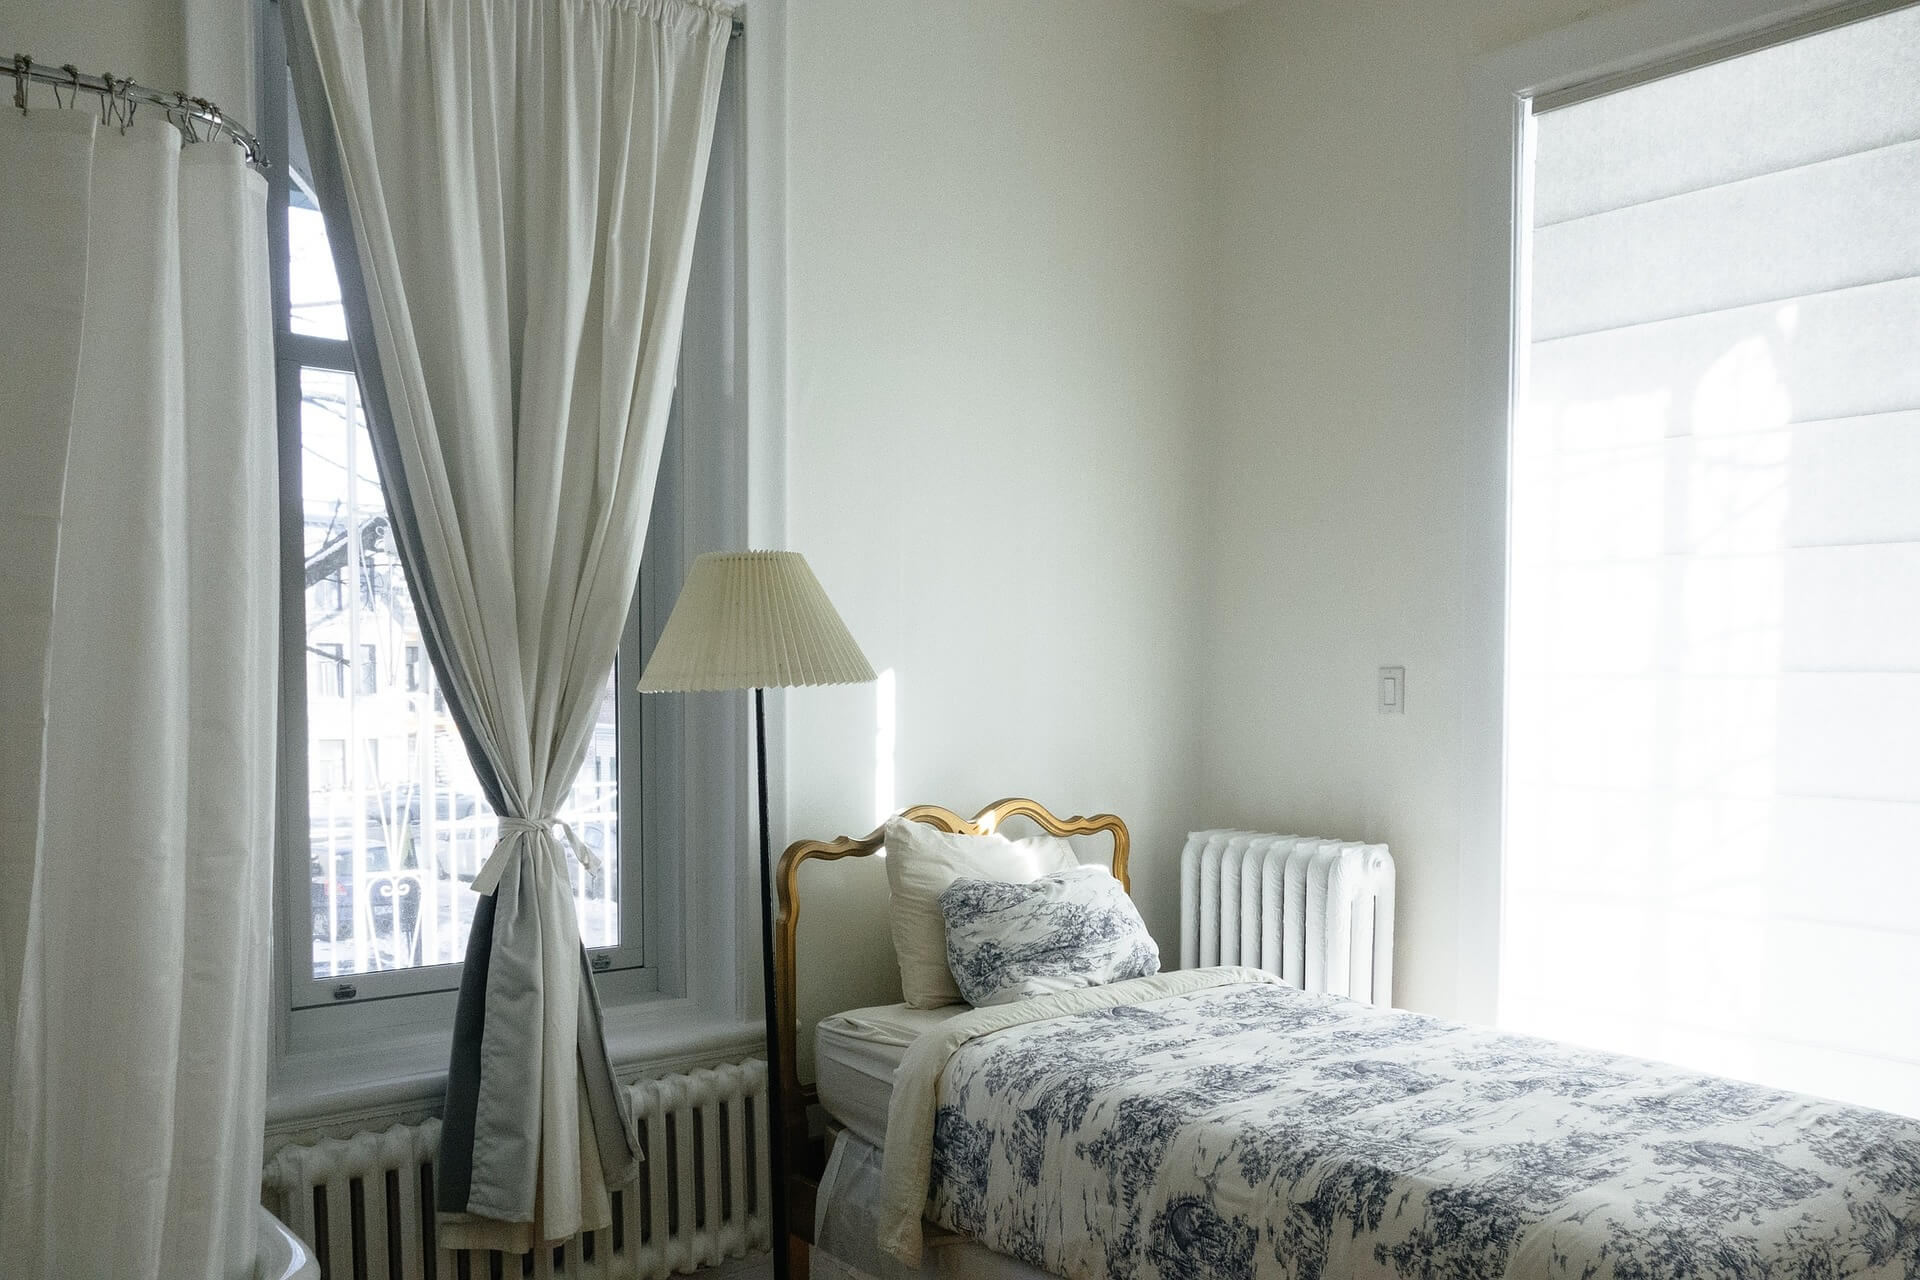 bedroom with curtains at the windows